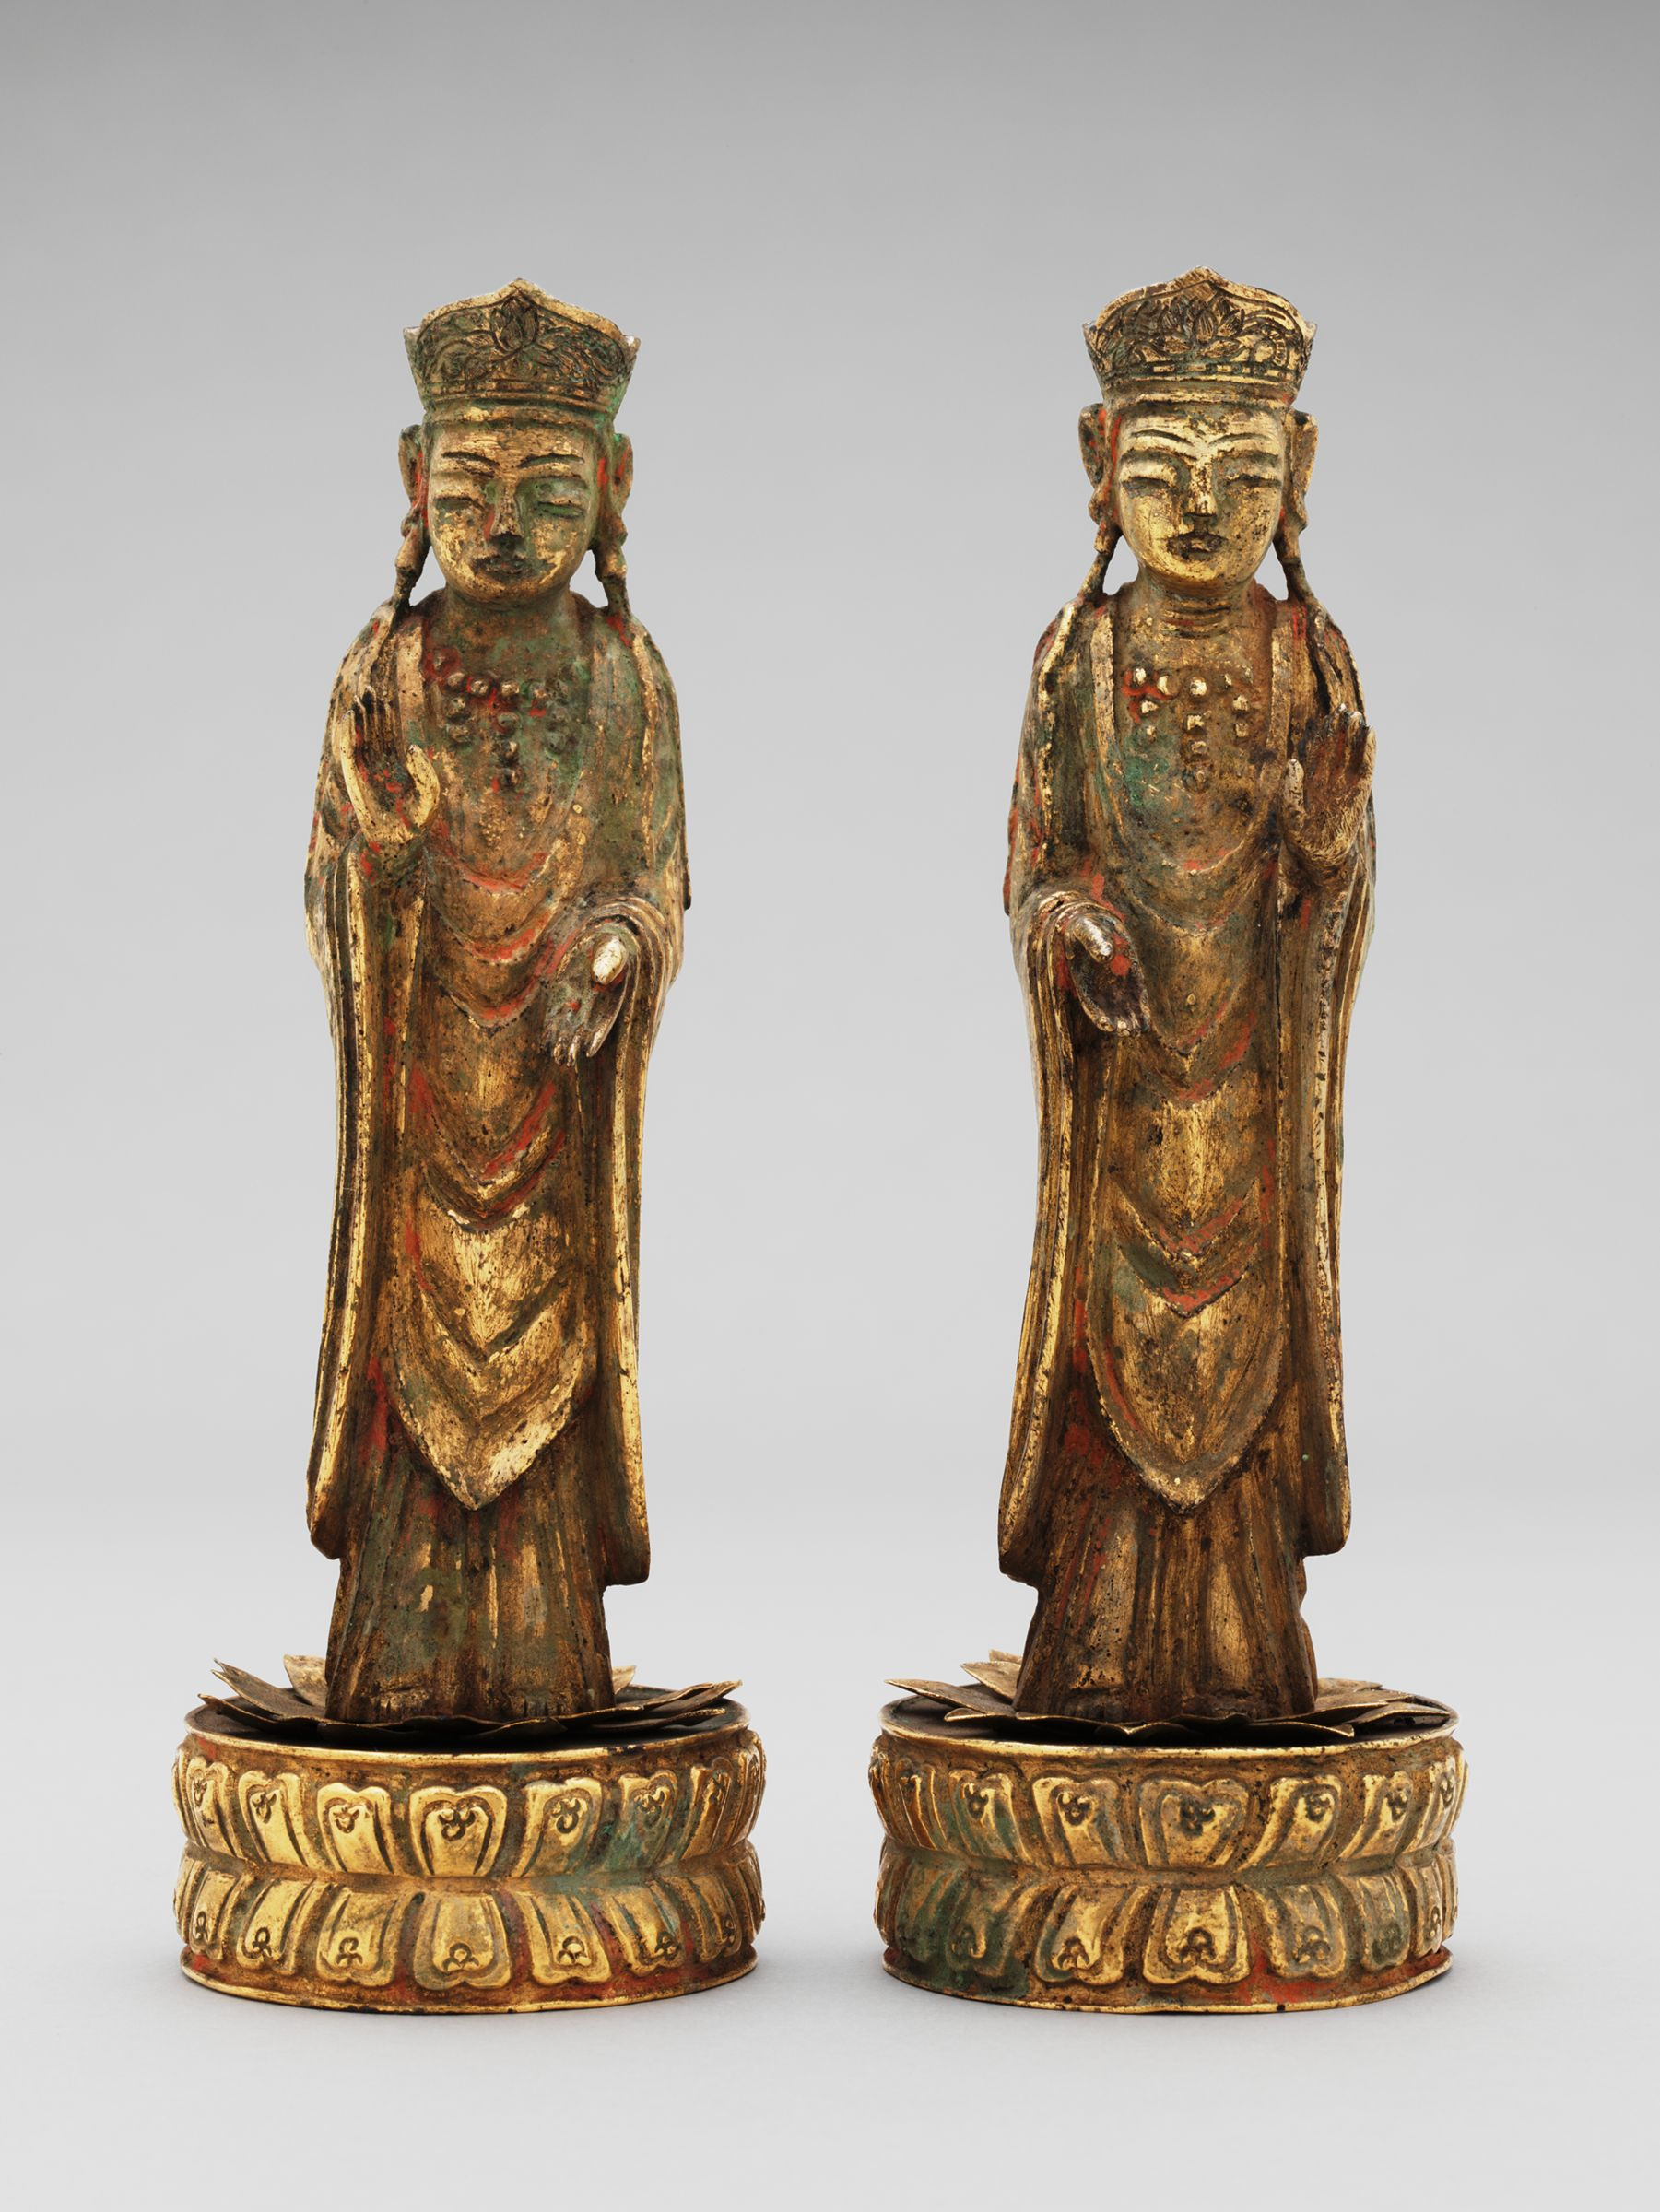 Standing Bodhisattva On A Circular Lotus Base (One Of A Pair) From The Interior Of A Portable Buddhist Shrine With Repoussé Decoration